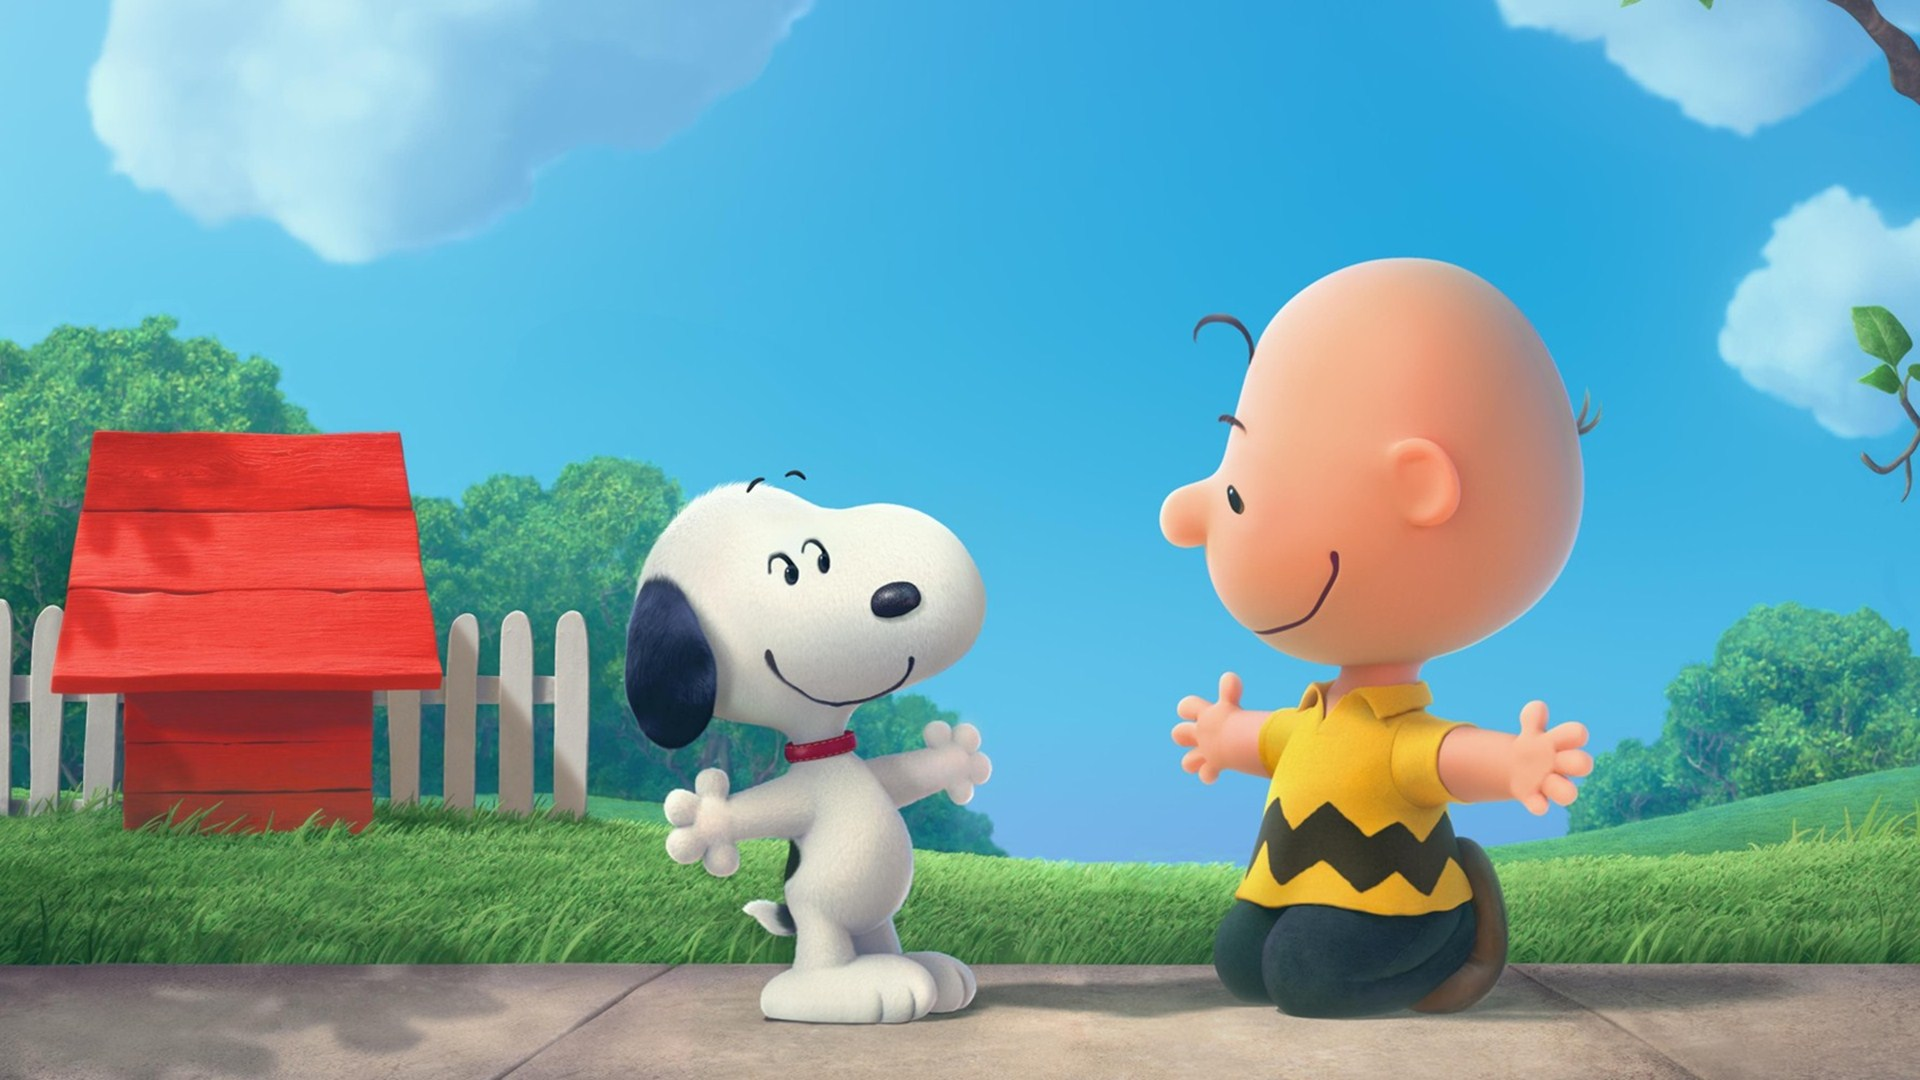 Download The Peanuts Movie Snoopy And Charlie Brown Wallpaper 1920x1080